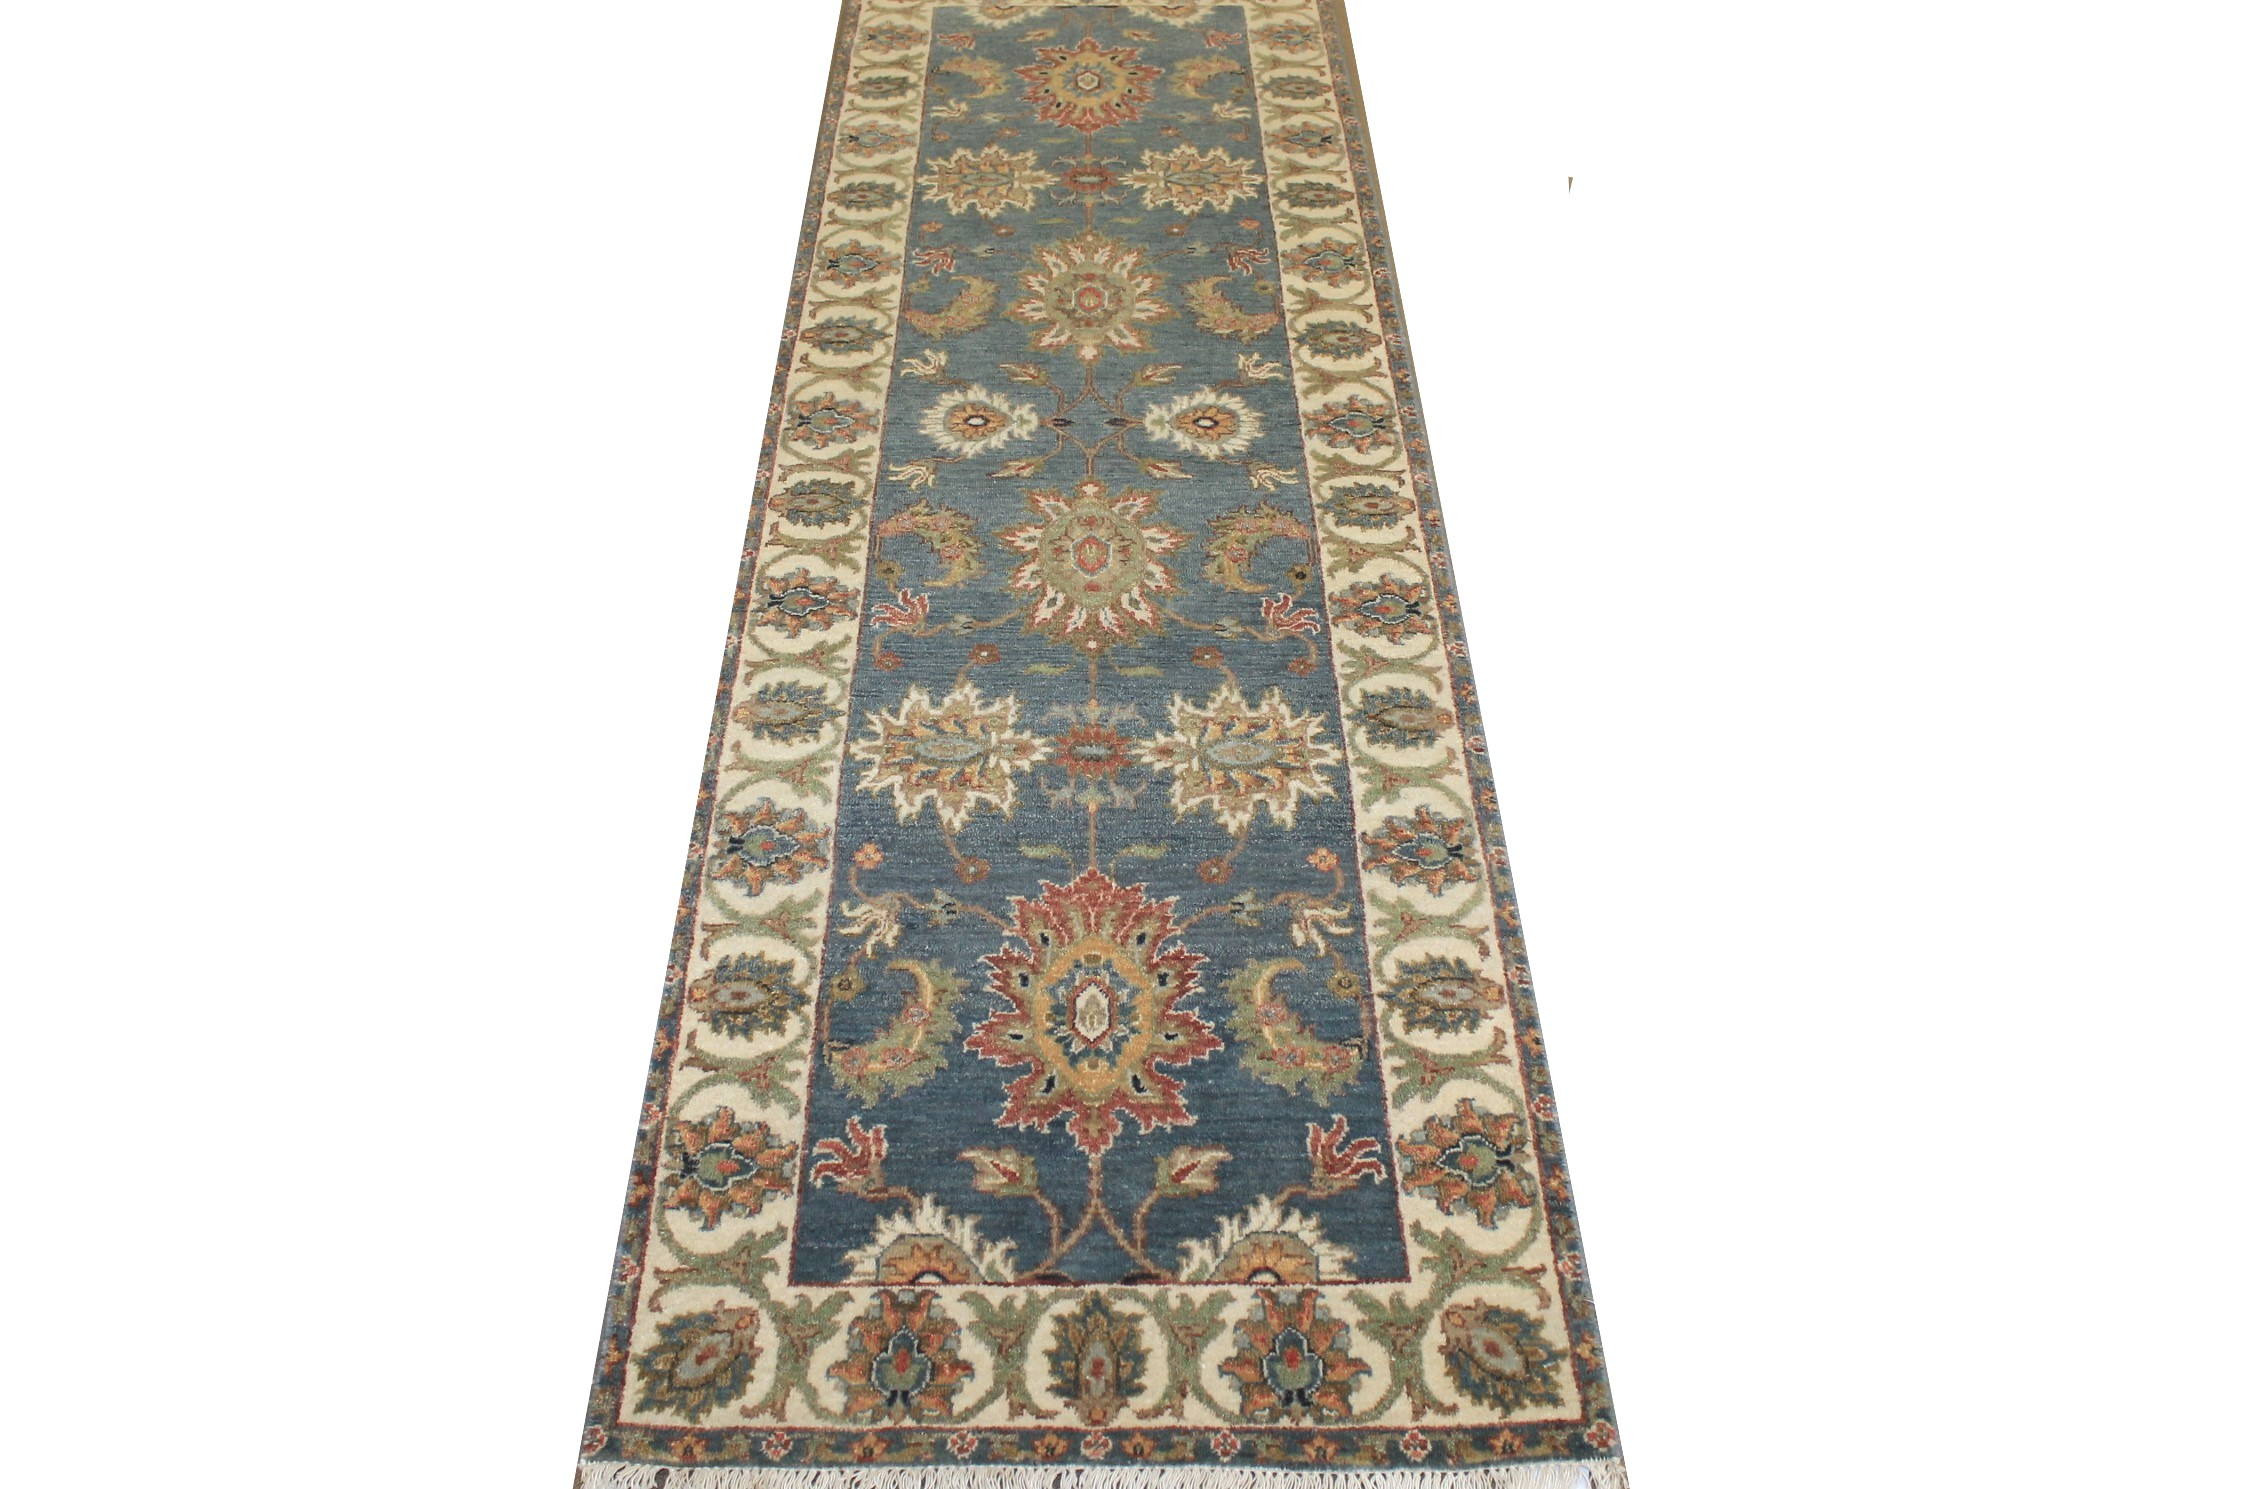 8 ft. Runner Traditional Hand Knotted Wool Area Rug - MR024835